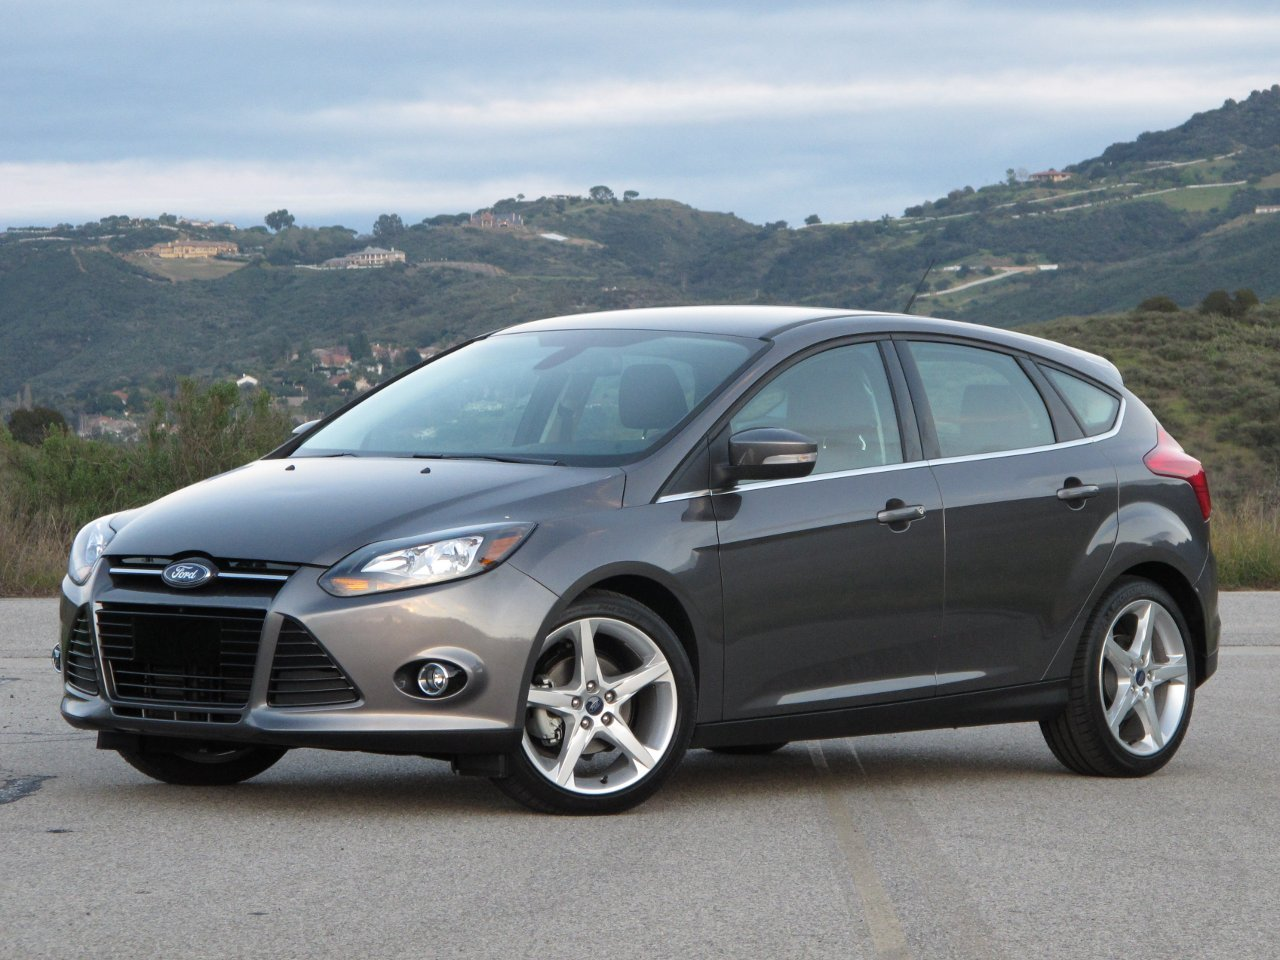 Ford Focus 2.0 2012 photo - 6